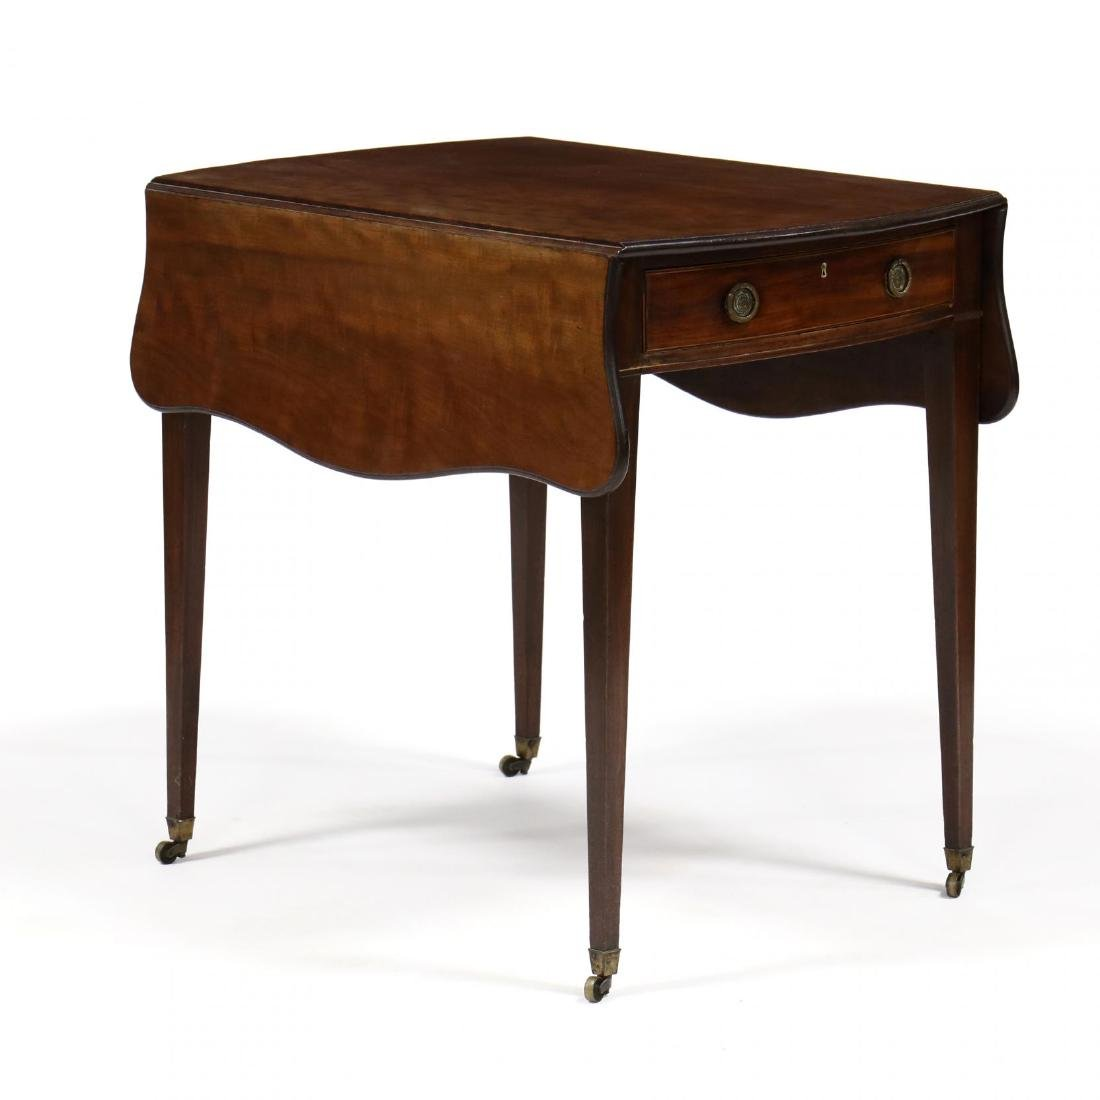 George III Mahogany Bow Front Pembroke Table